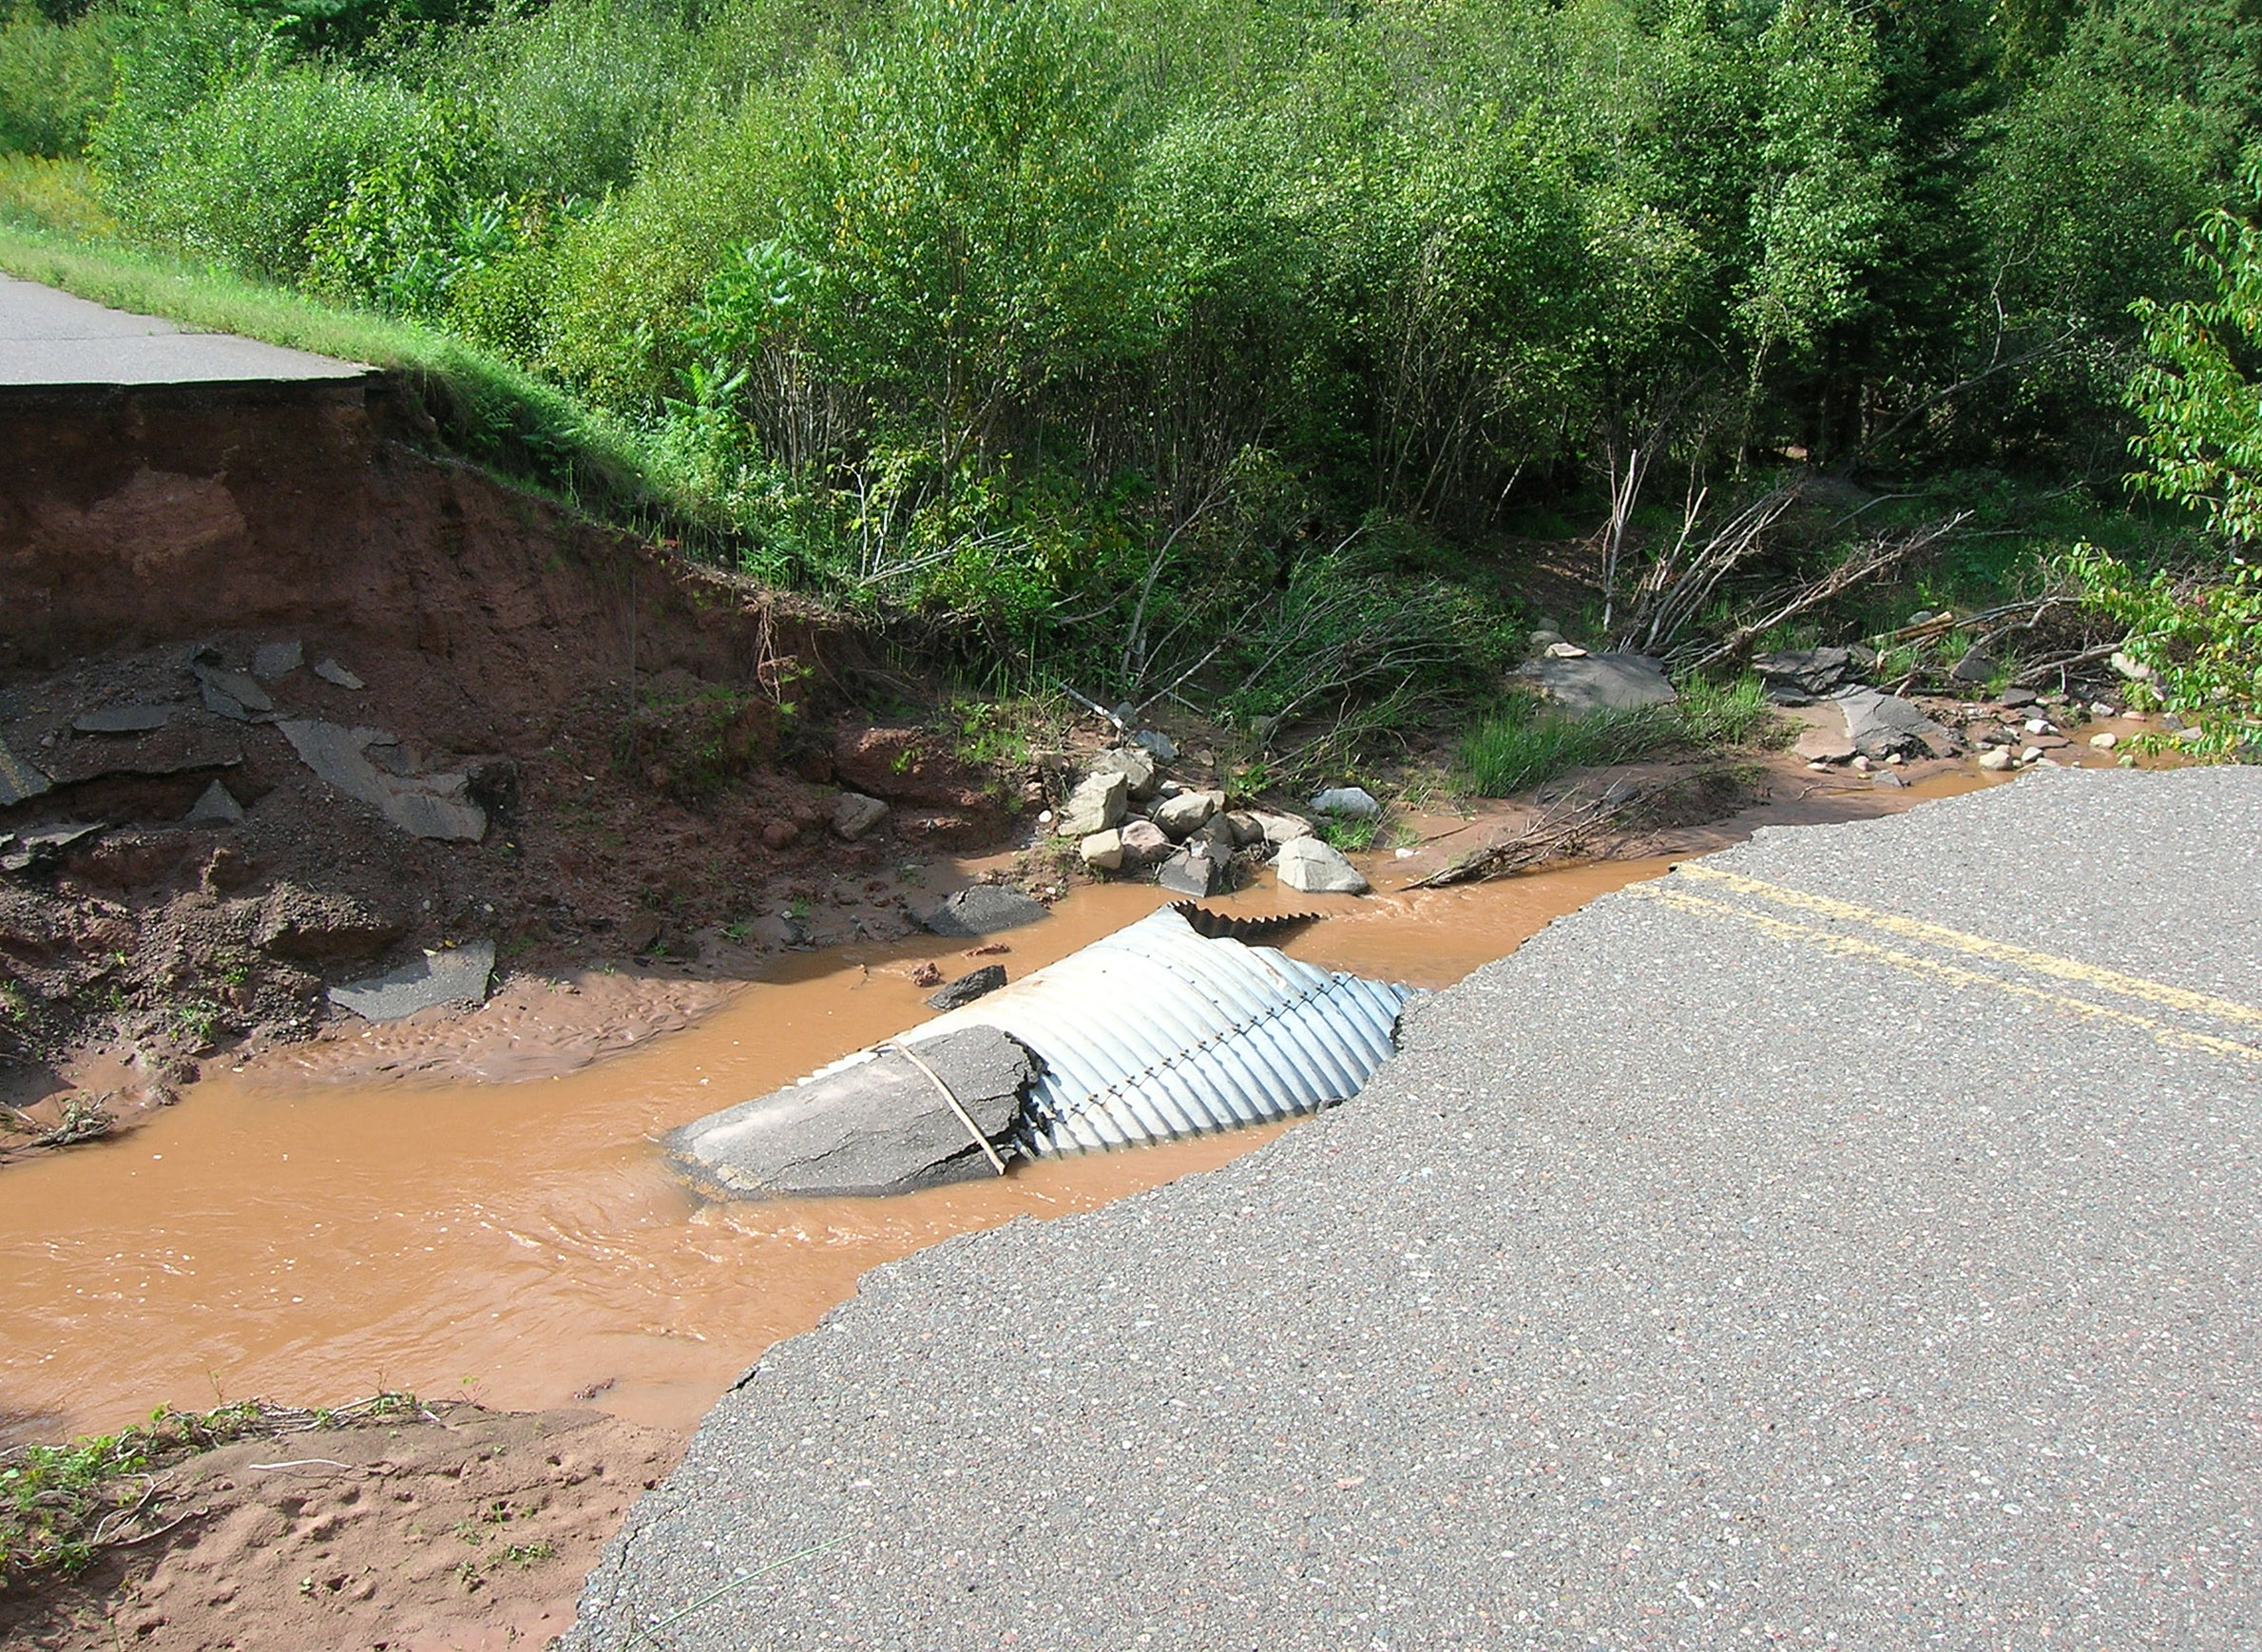 science-climate-flooding-money-infrastructure-costs-ashland-2016-wildcatrd.jpg